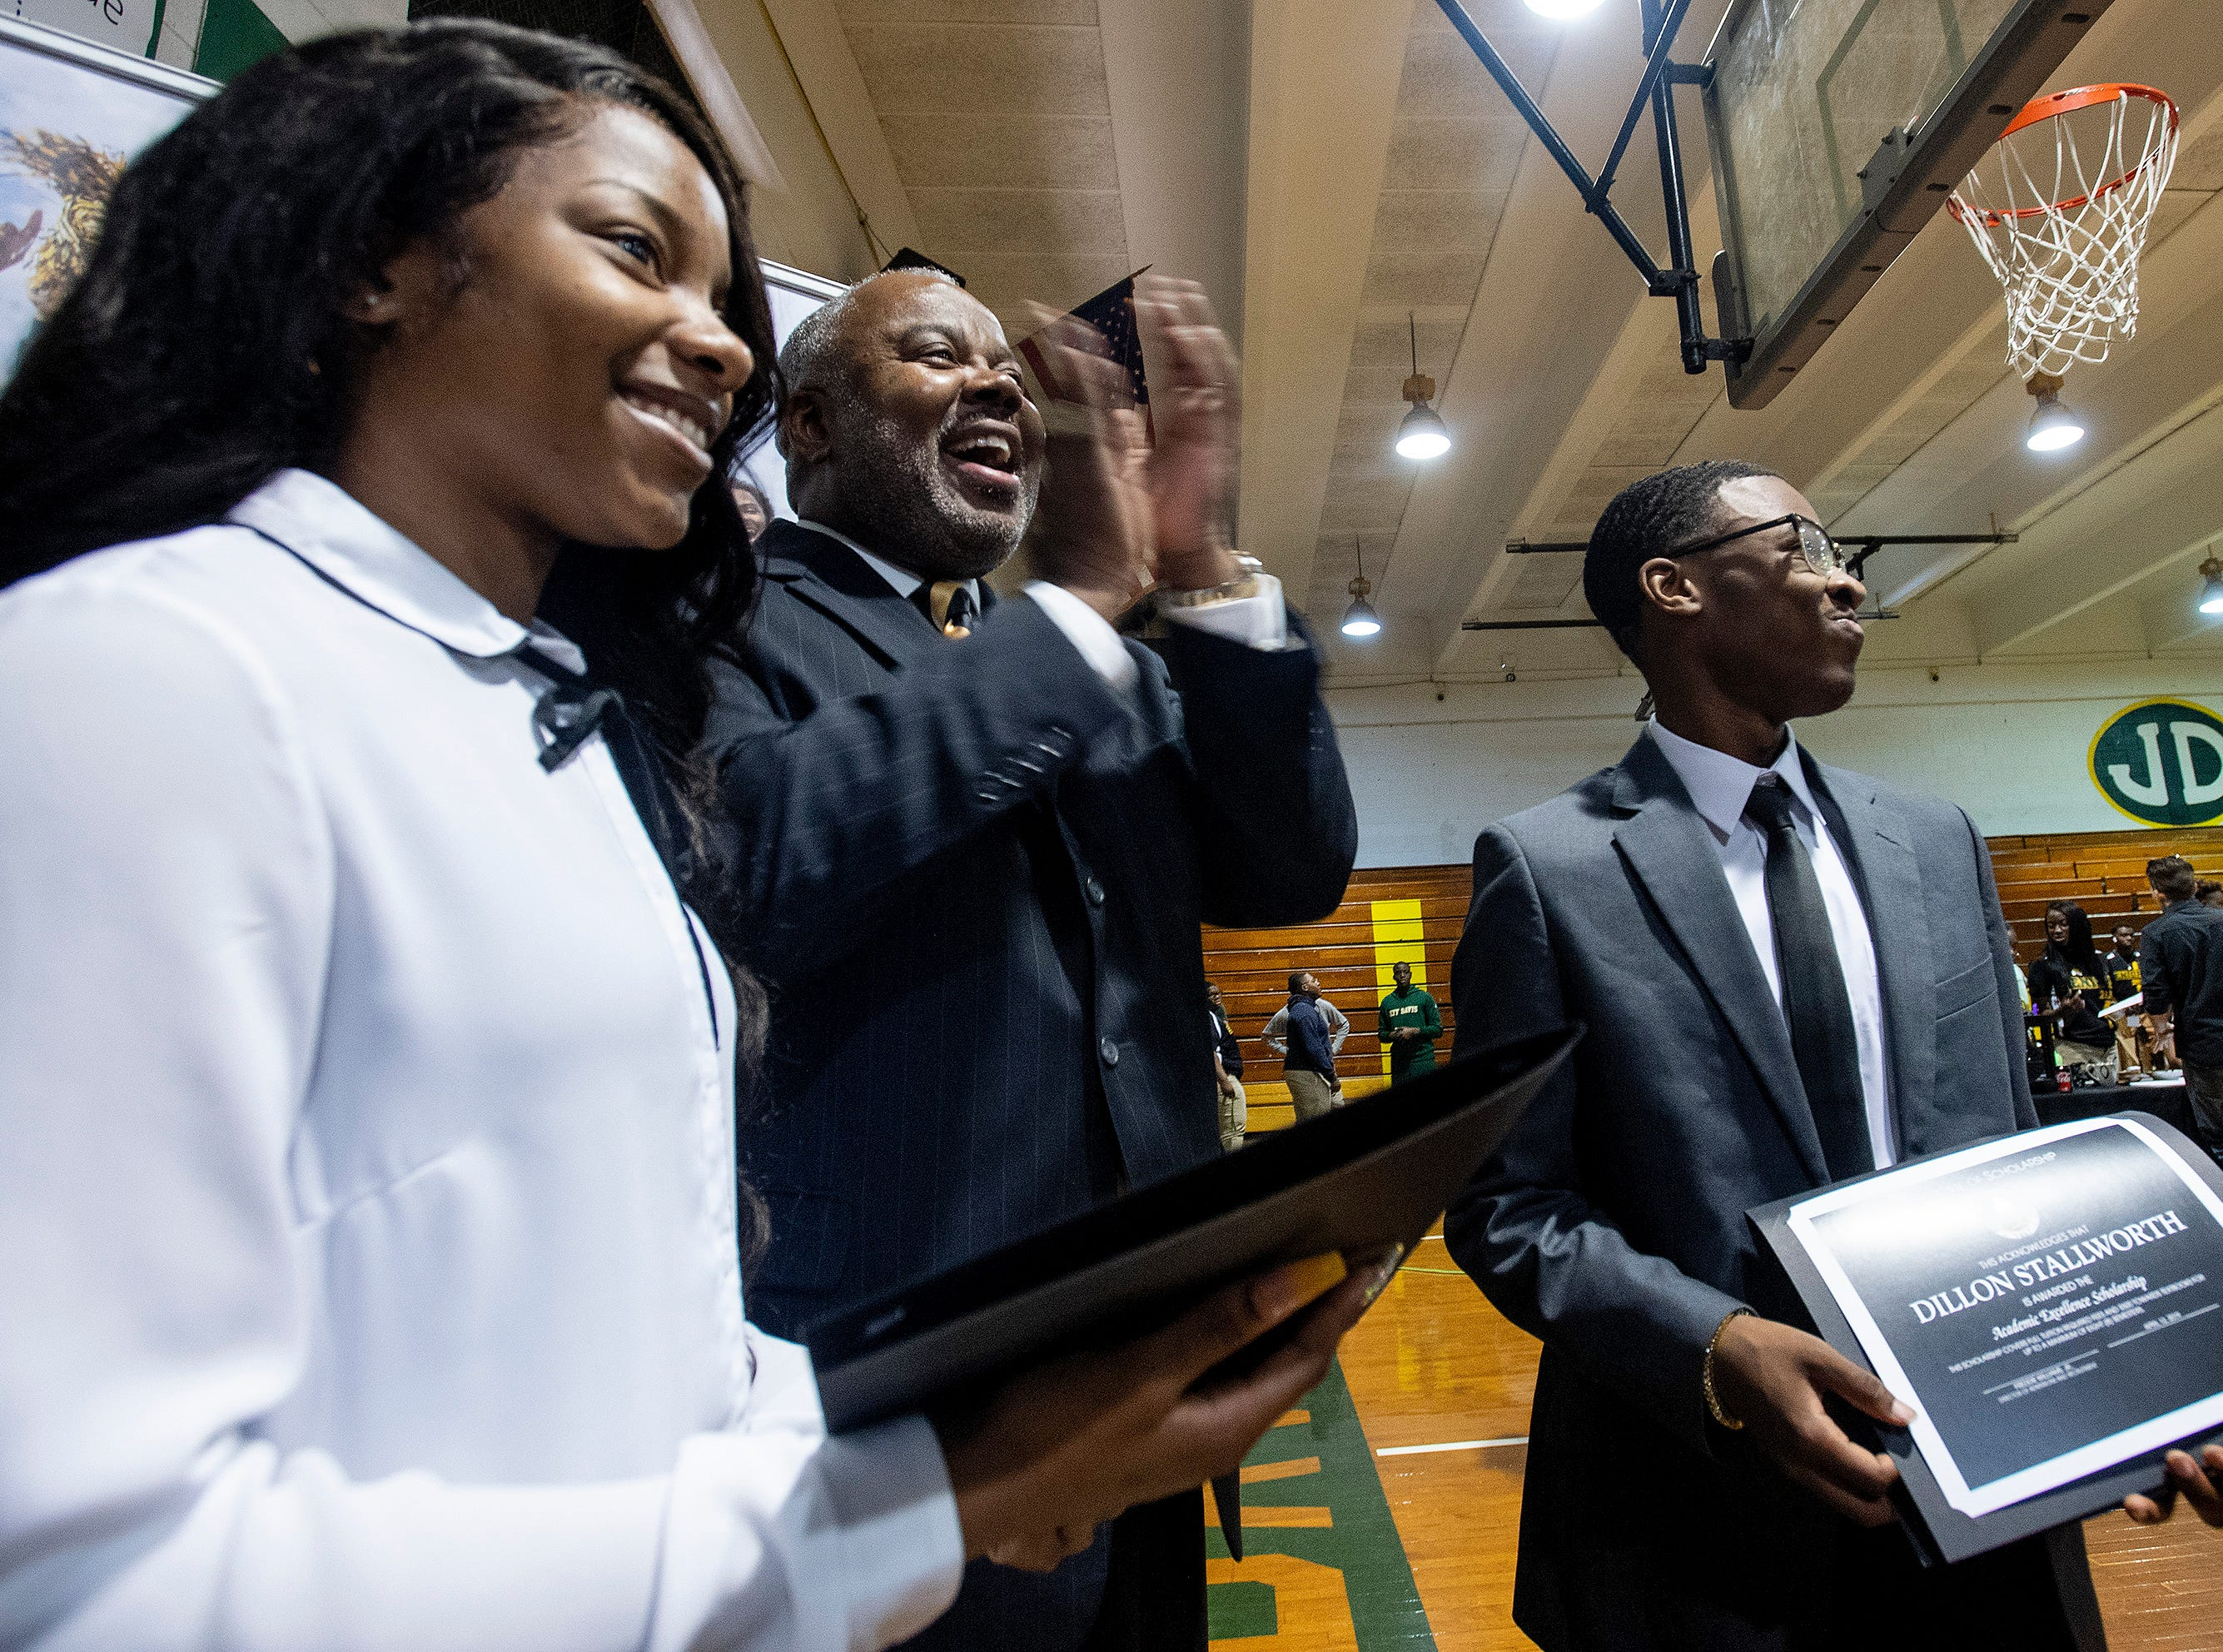 Alabama State University President Quinton Ross talks with Scholarship winners from Carver High School,  Kiondra Woods, left, and Dillon Stallworth during the ASU President's Tour stop at Jeff Davis High School in Montgomery, Ala., on Friday April 12, 2019.